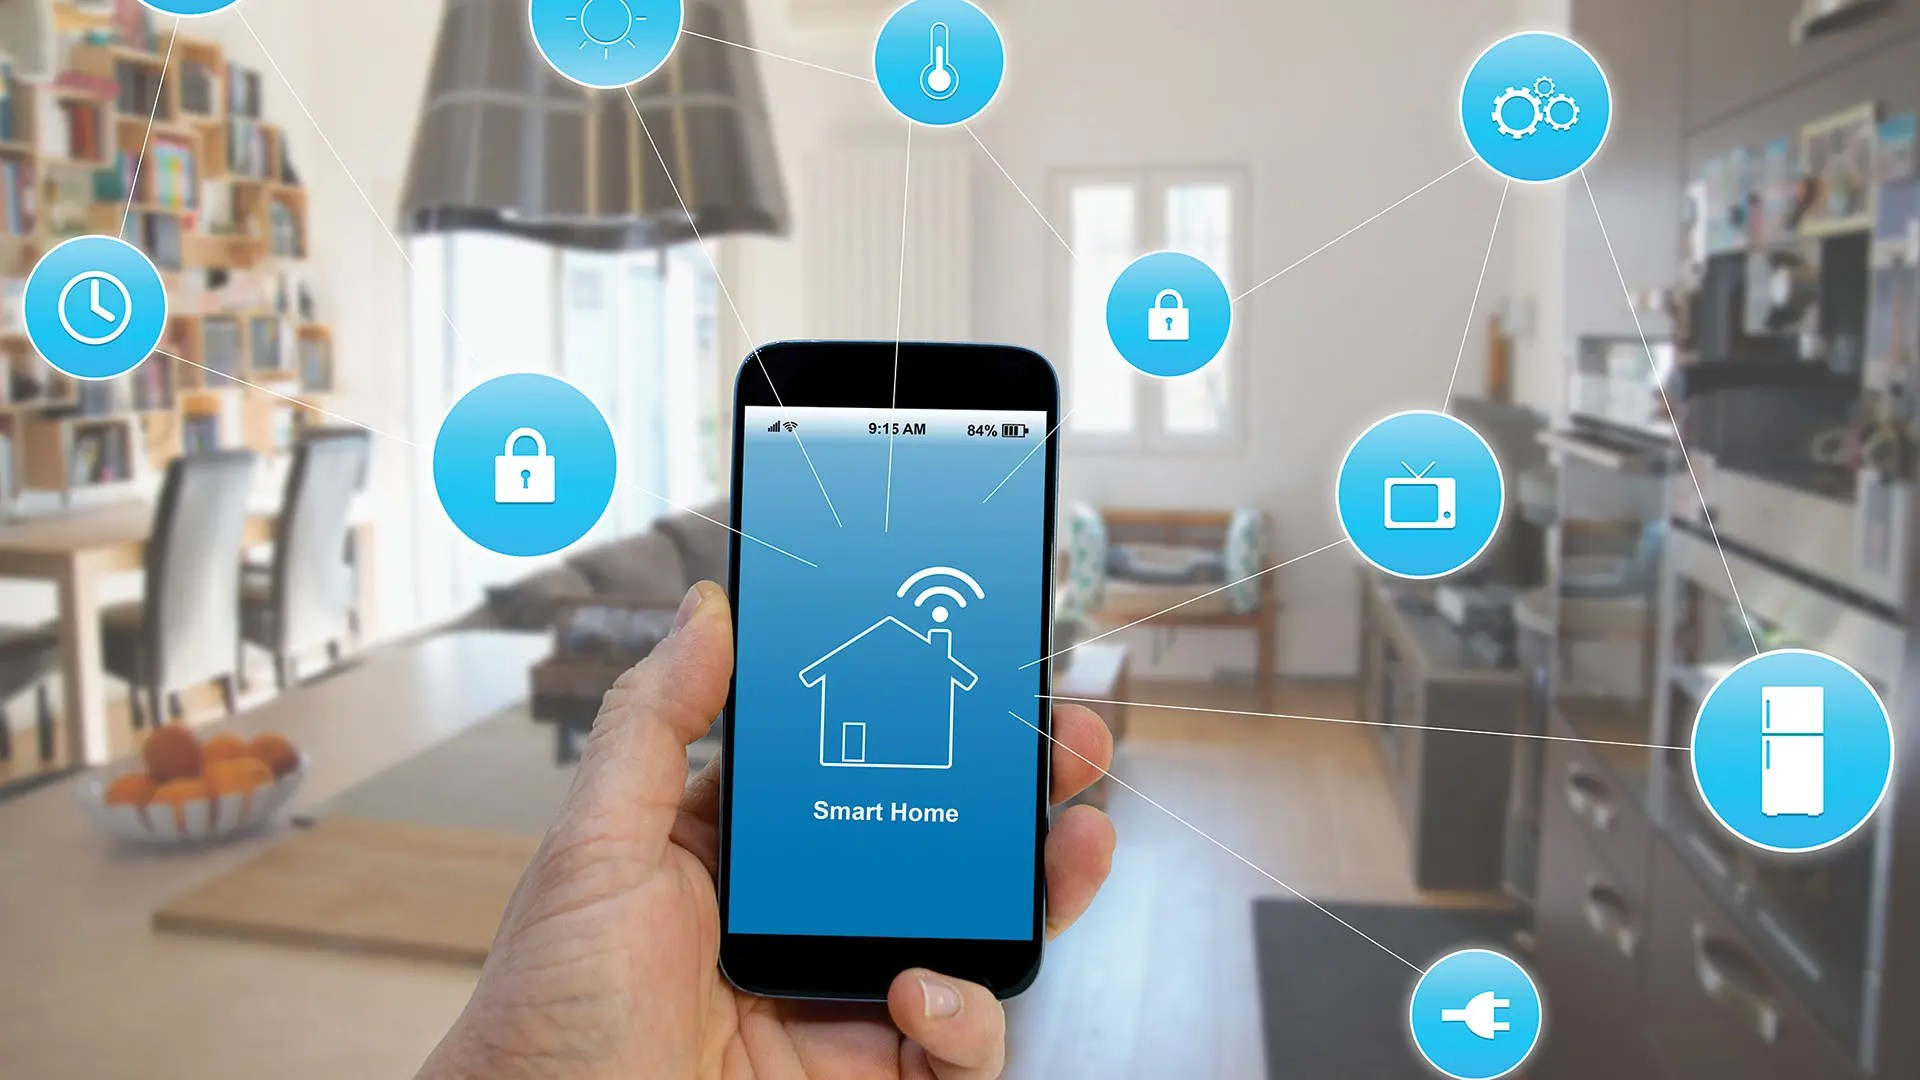 smart home technology puts homeowners